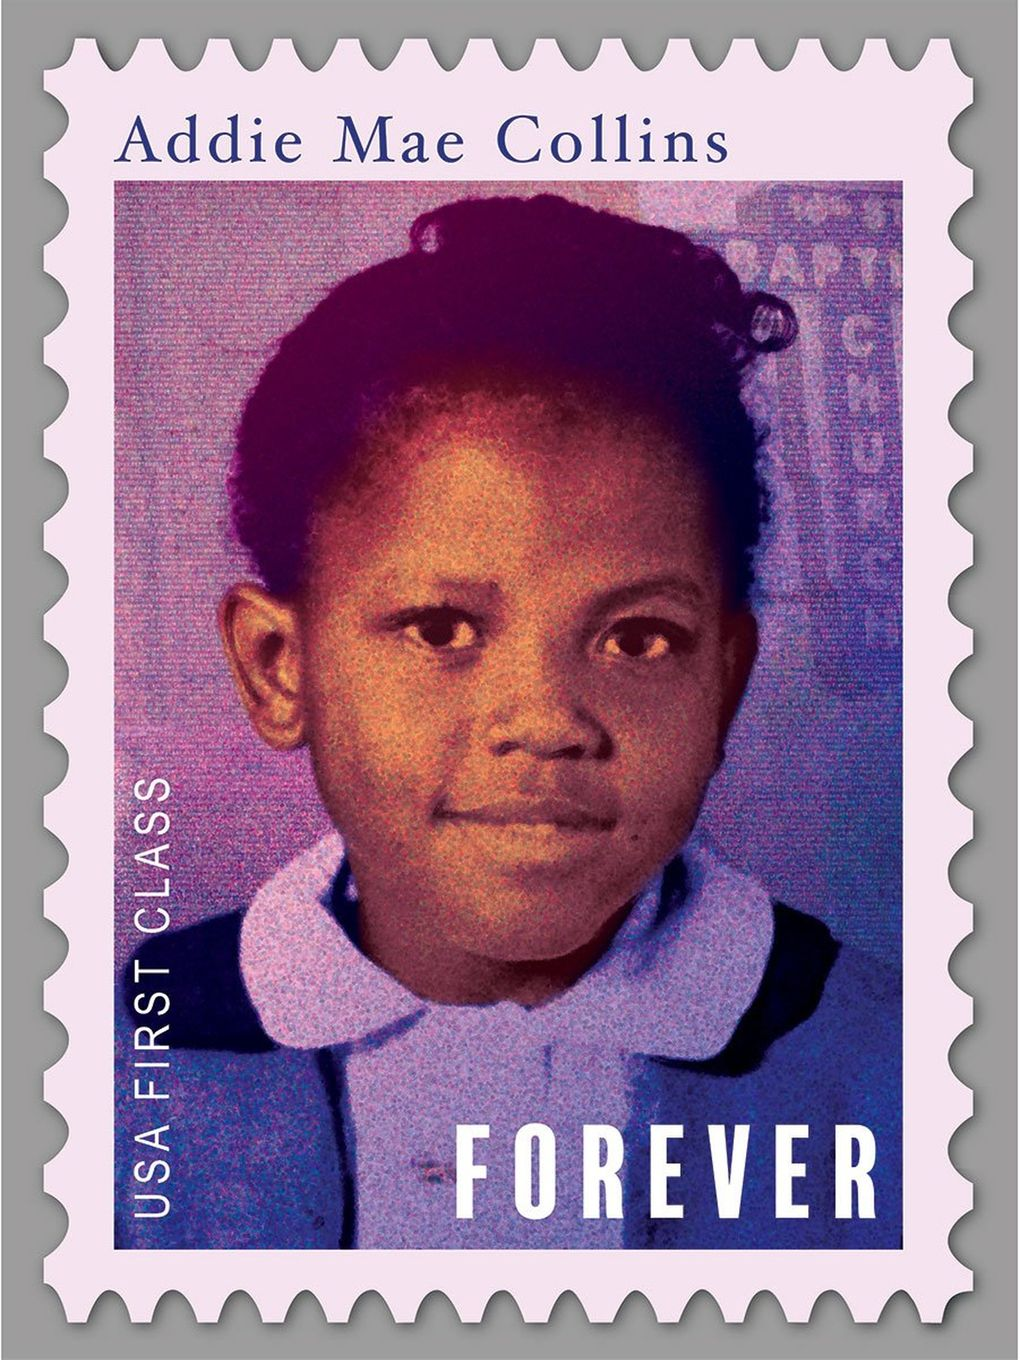 Paul Rucker's aluminum-print stamps of civil-rights martyrs who've never been on official U.S. postage stamps (including four girls who died in the 1963 Alabama church bombing) are showing at Greg Kucera Gallery through Dec. 21. (Courtesy of Greg Kucera Gallery)